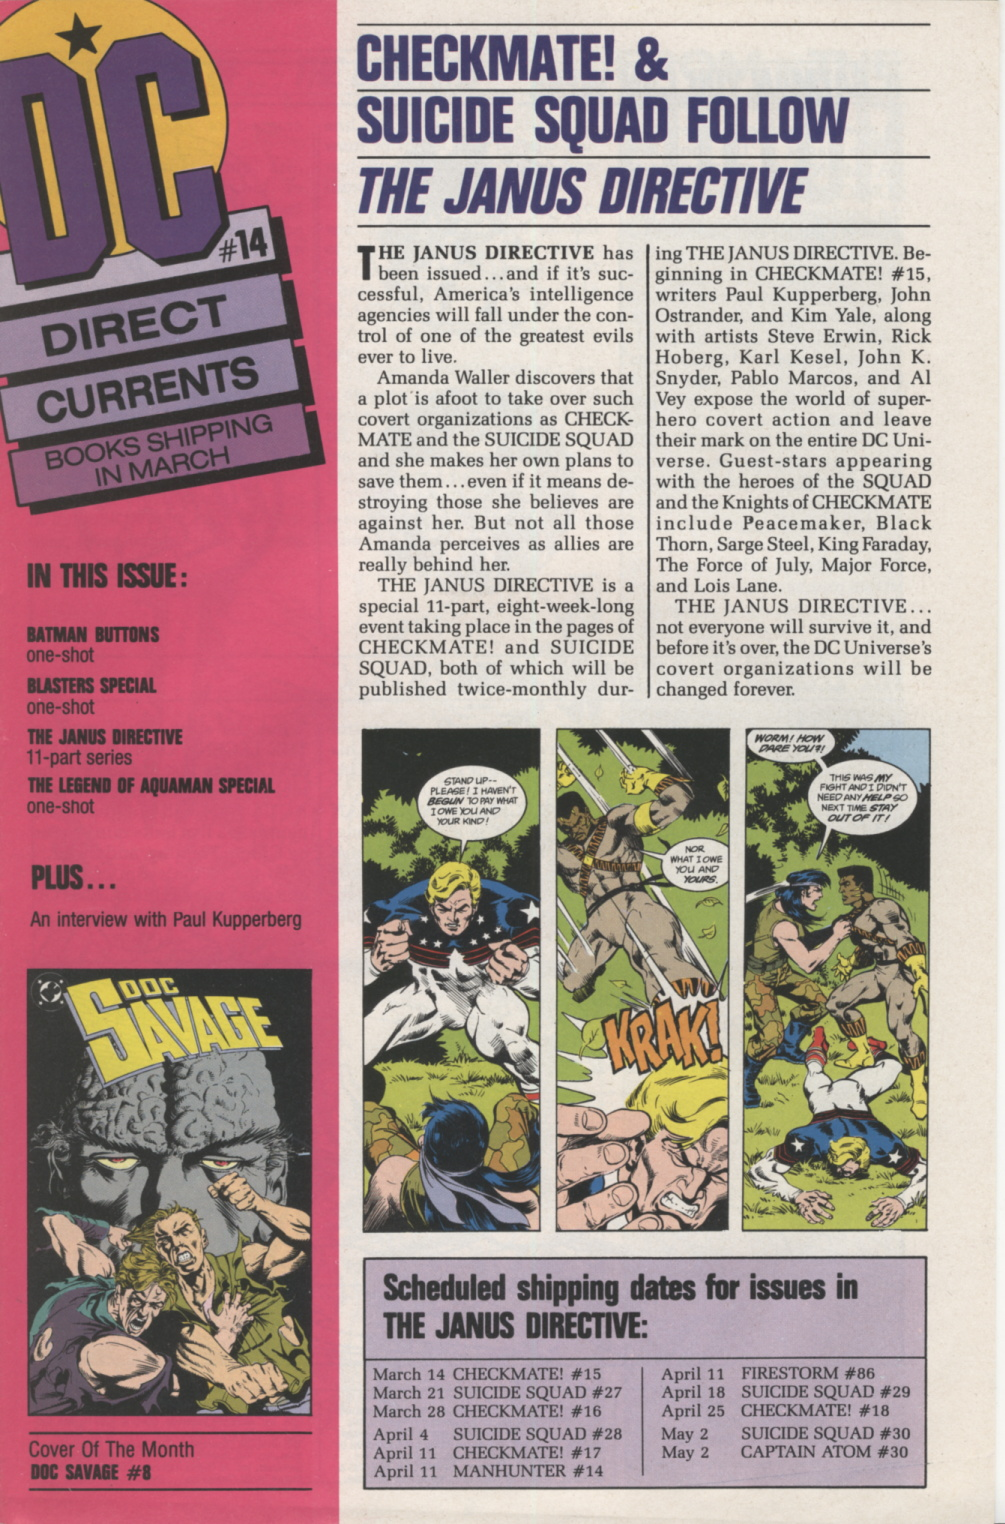 Time Capsule: DC Direct Currents 14, February 1989